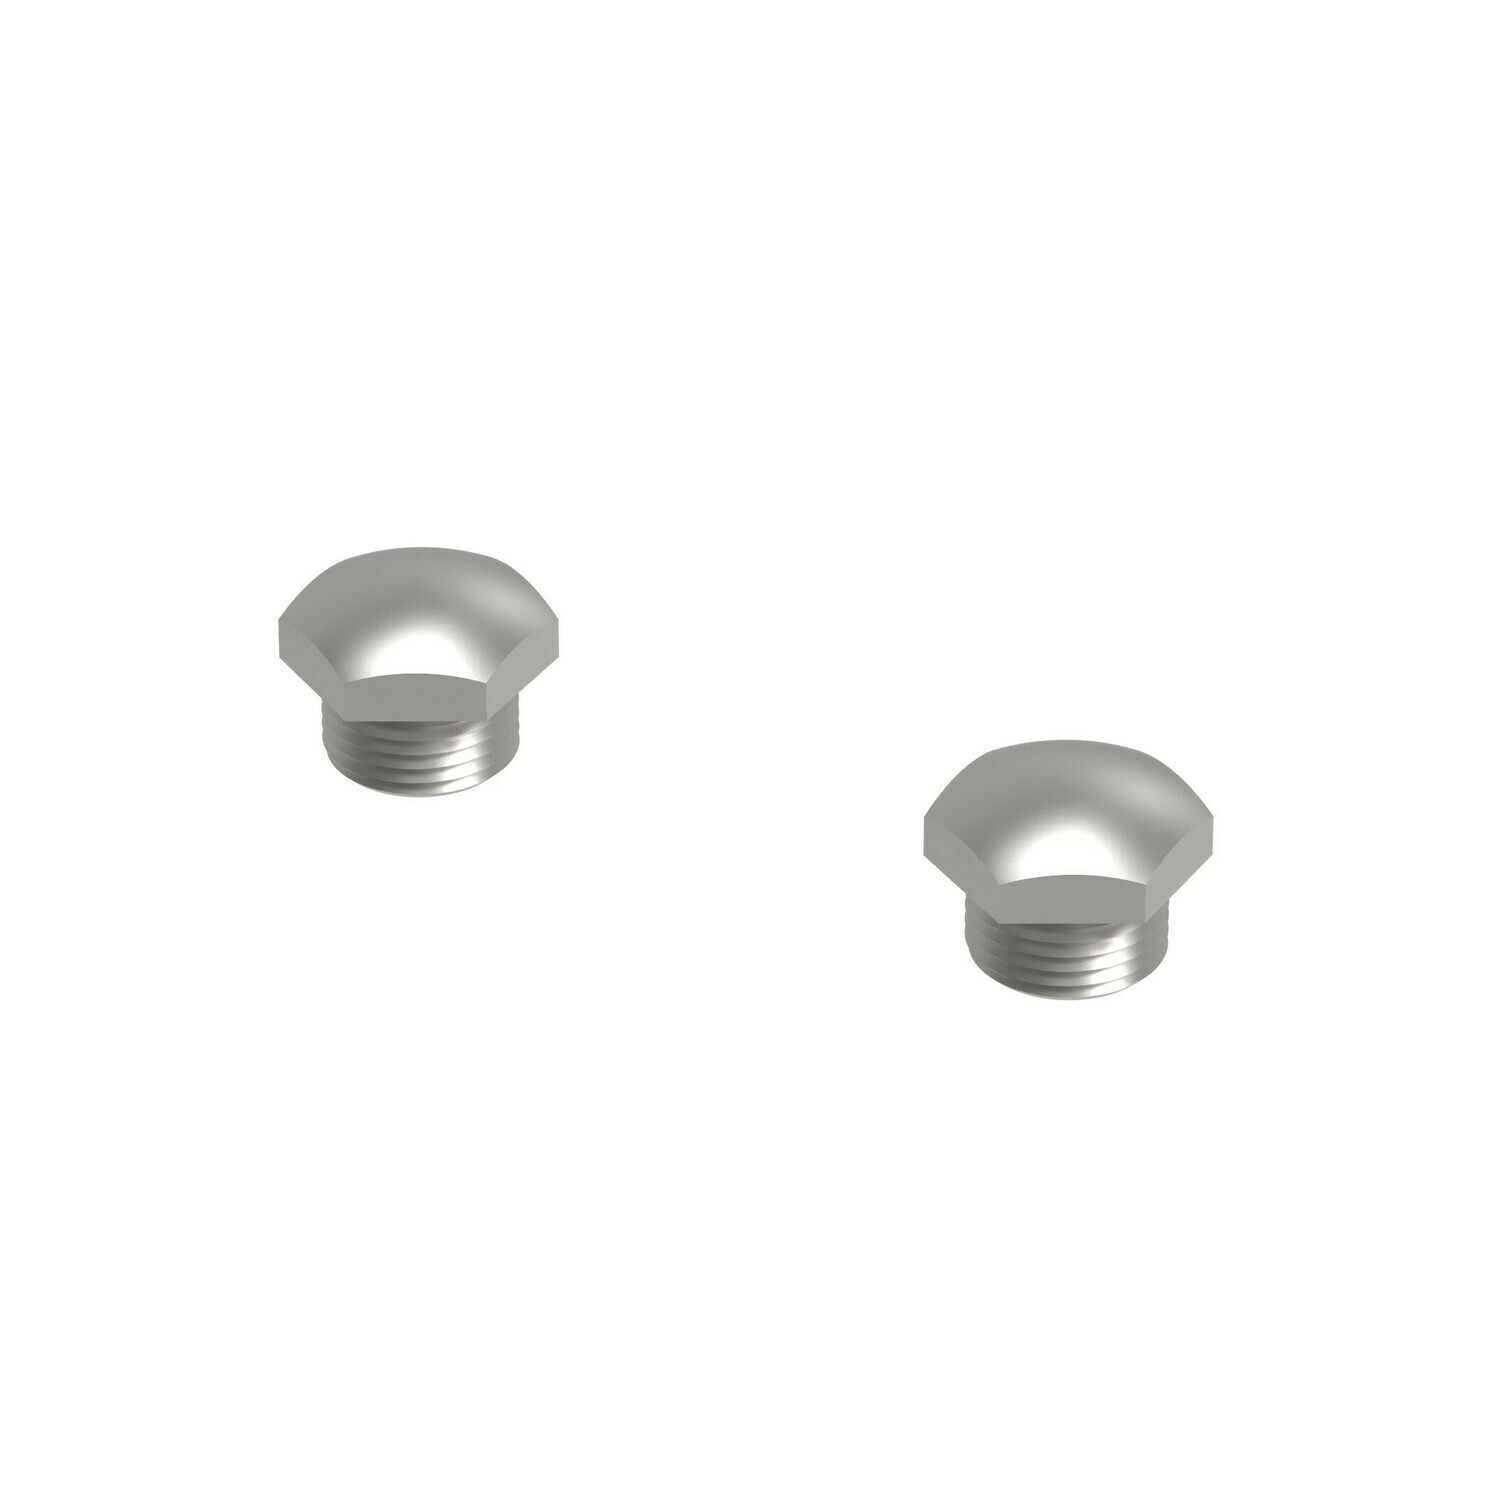 ONE PAIR OF STAINLESS STEEL M18X1.5 O2 SENSOR PLUGS